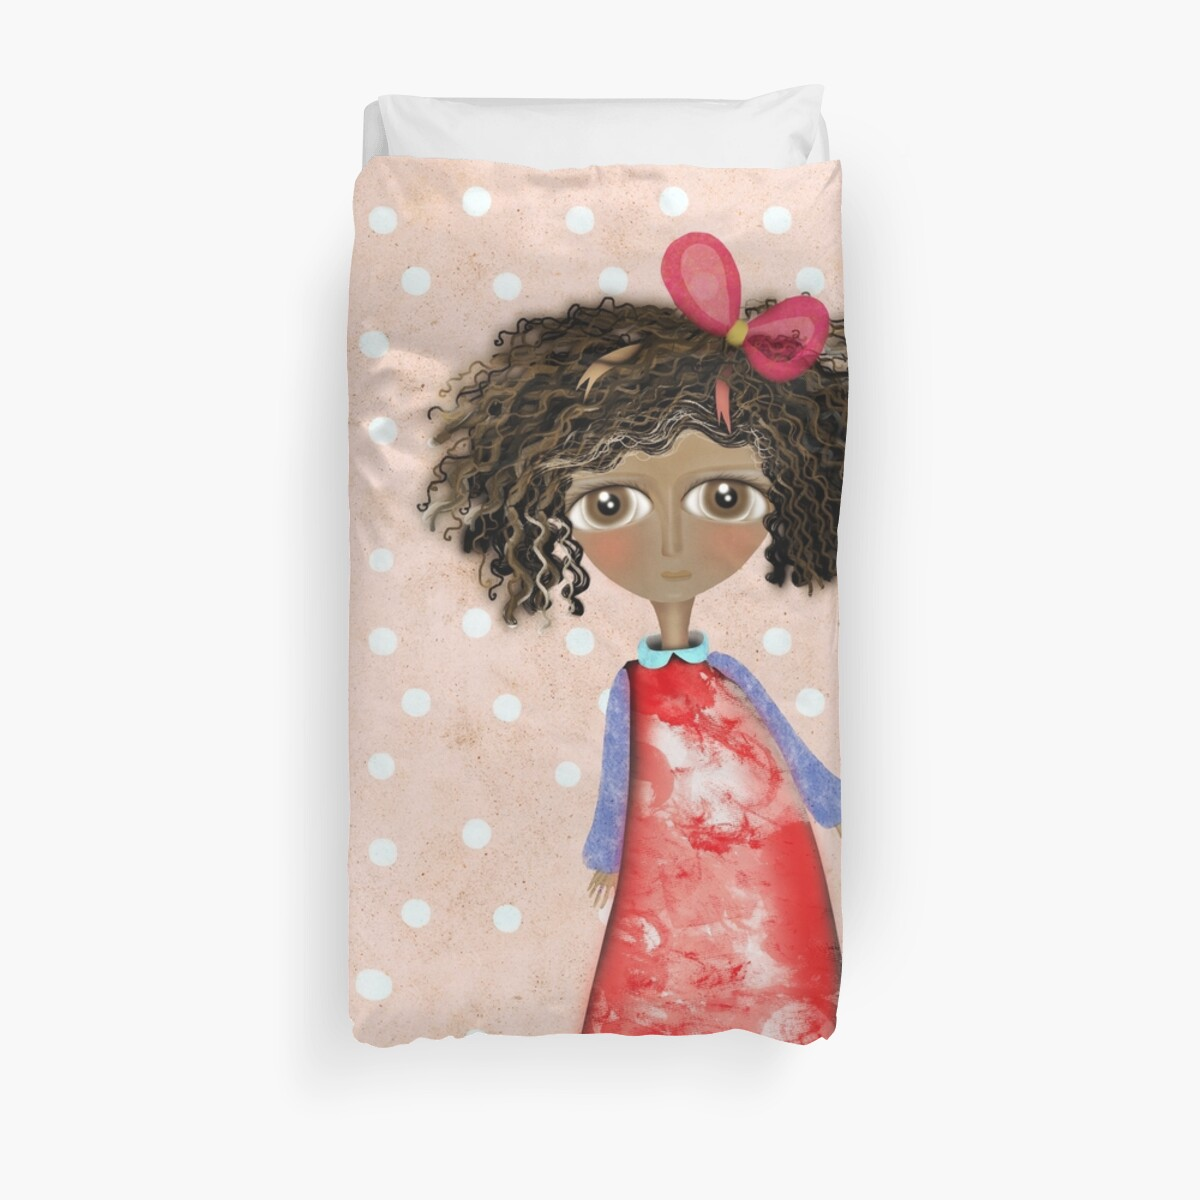 Africa Doll Wonderland Grungy Pink Old Styled Polka Dots by rupydetequila